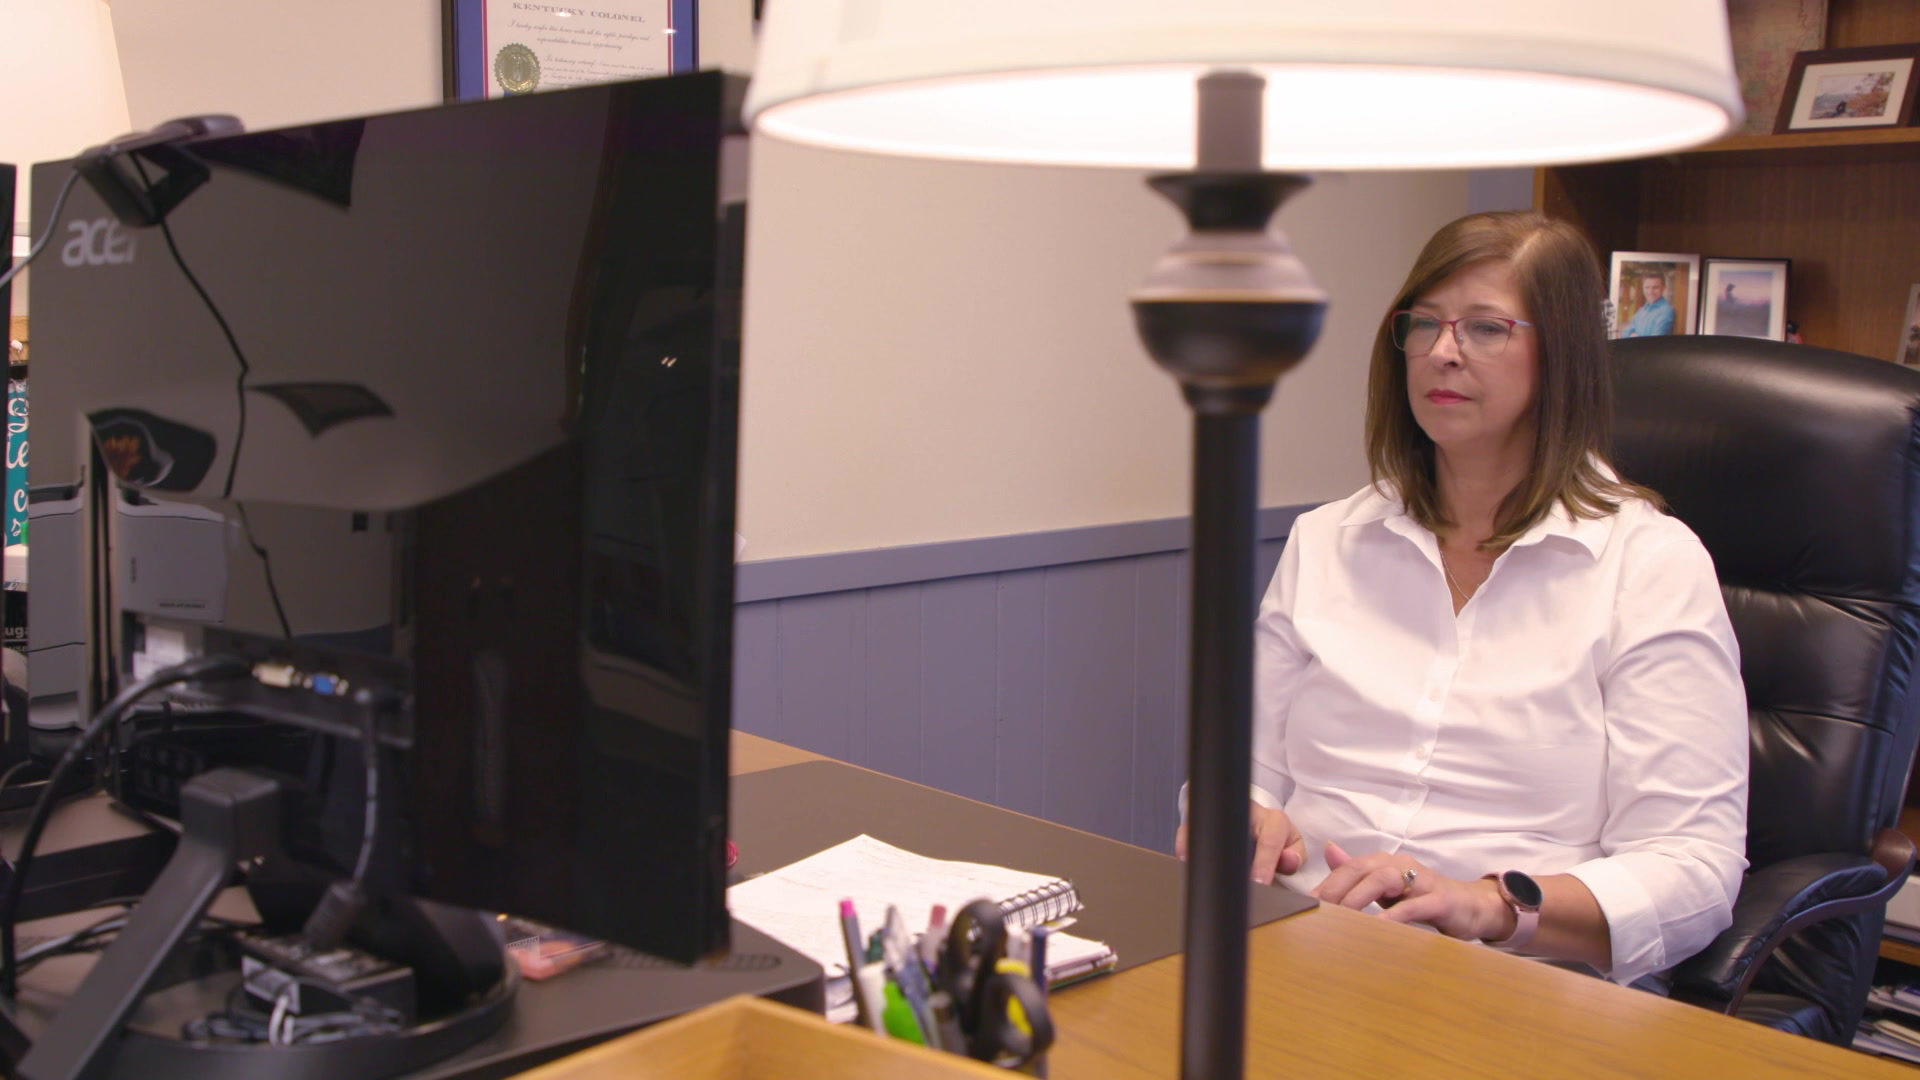 Kristine Hillmer sits at a desk and types on a keyboard with a lamp and computer monitor in the foreground.